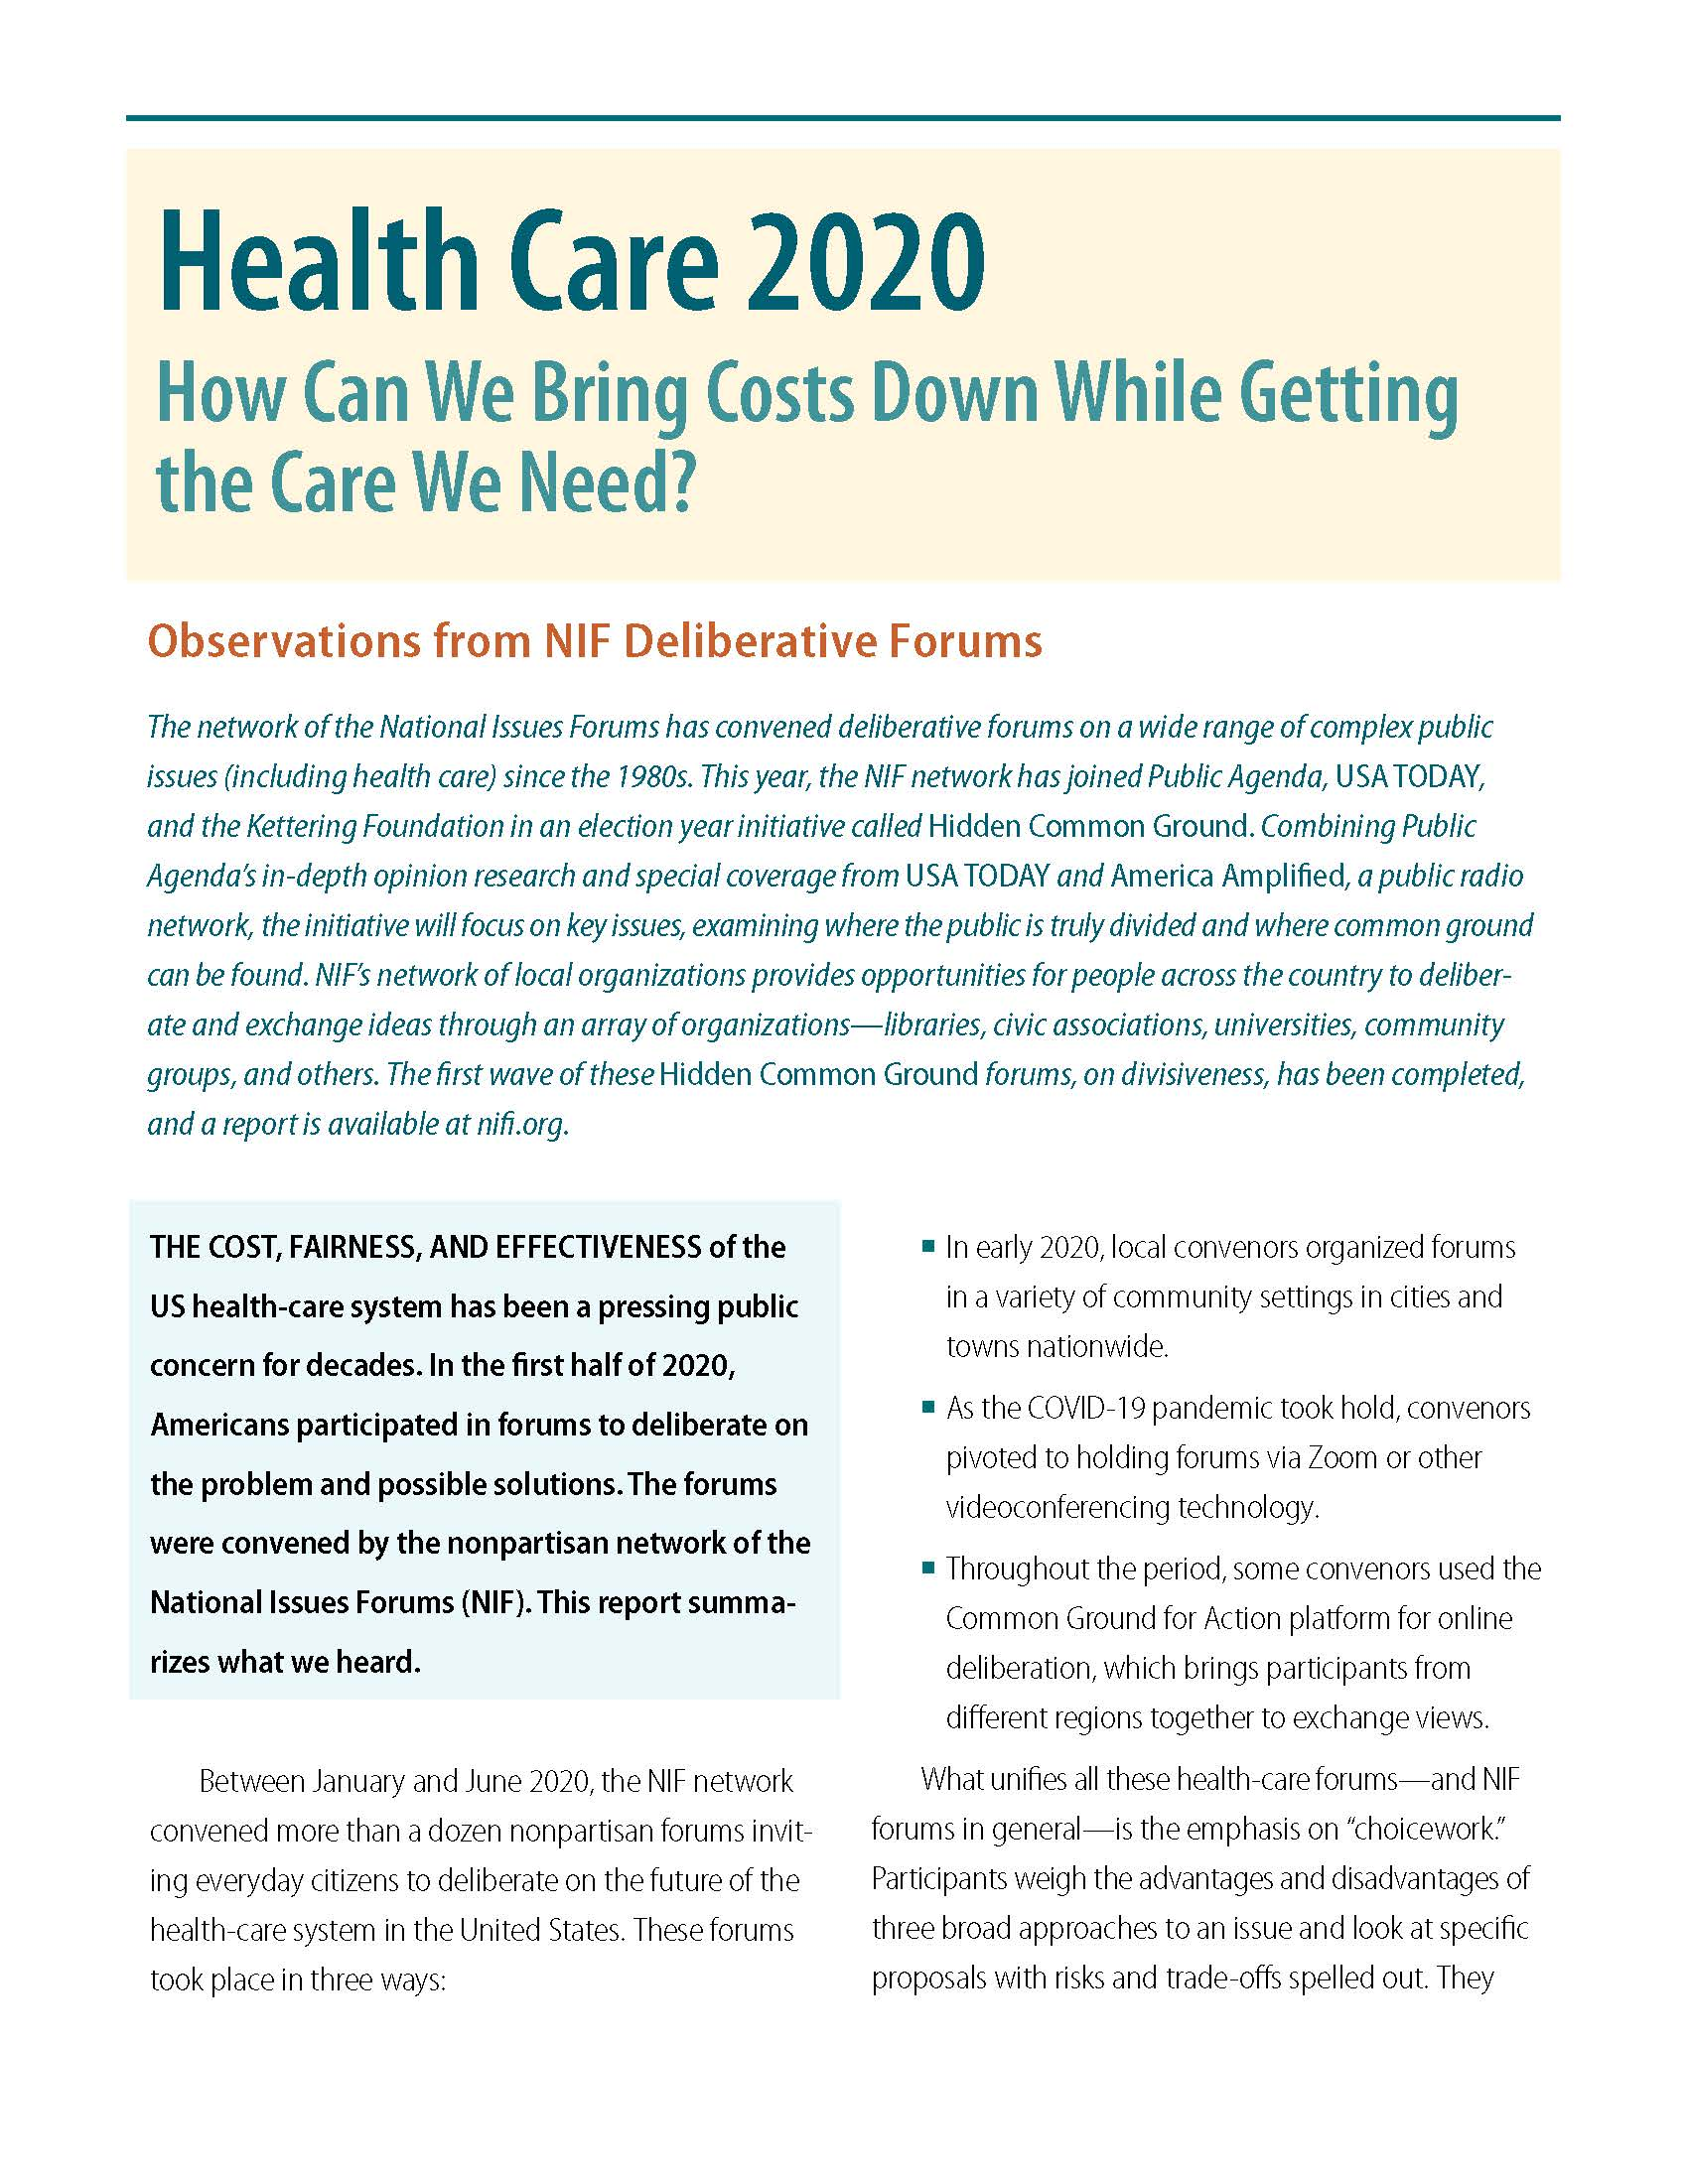 Cover of Health Care 2020 report